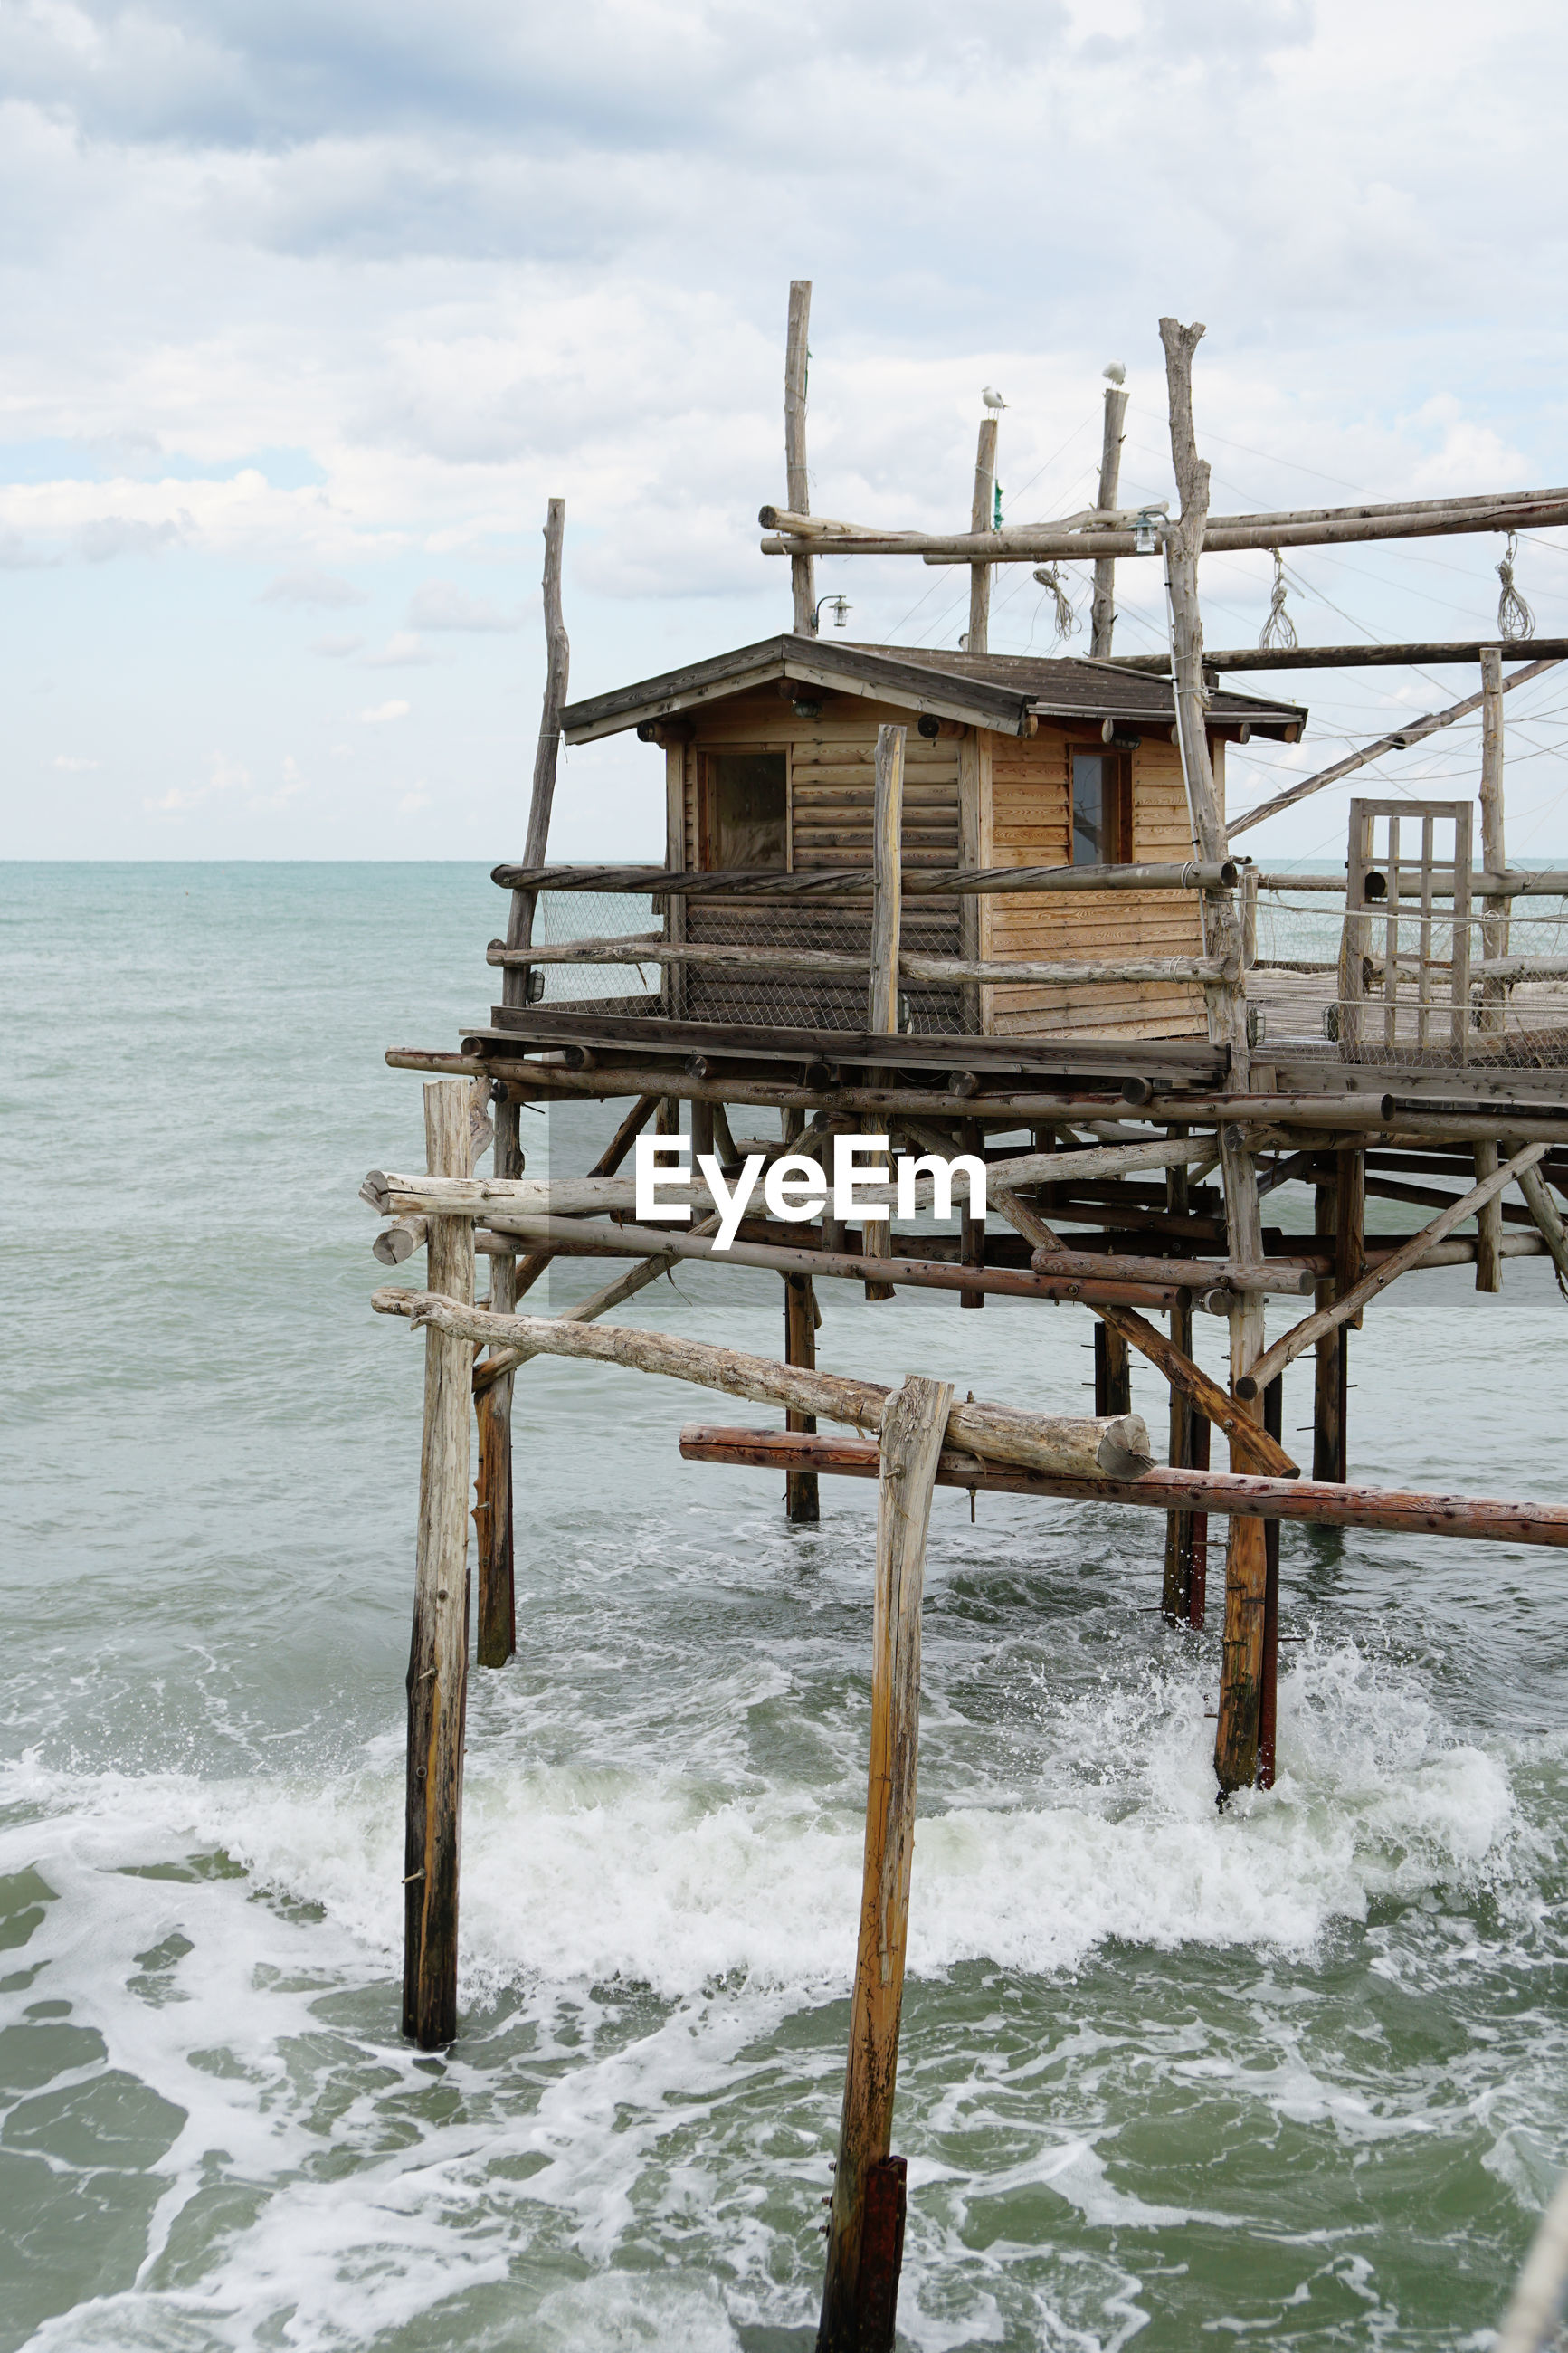 BUILT STRUCTURE ON SEA AGAINST SKY